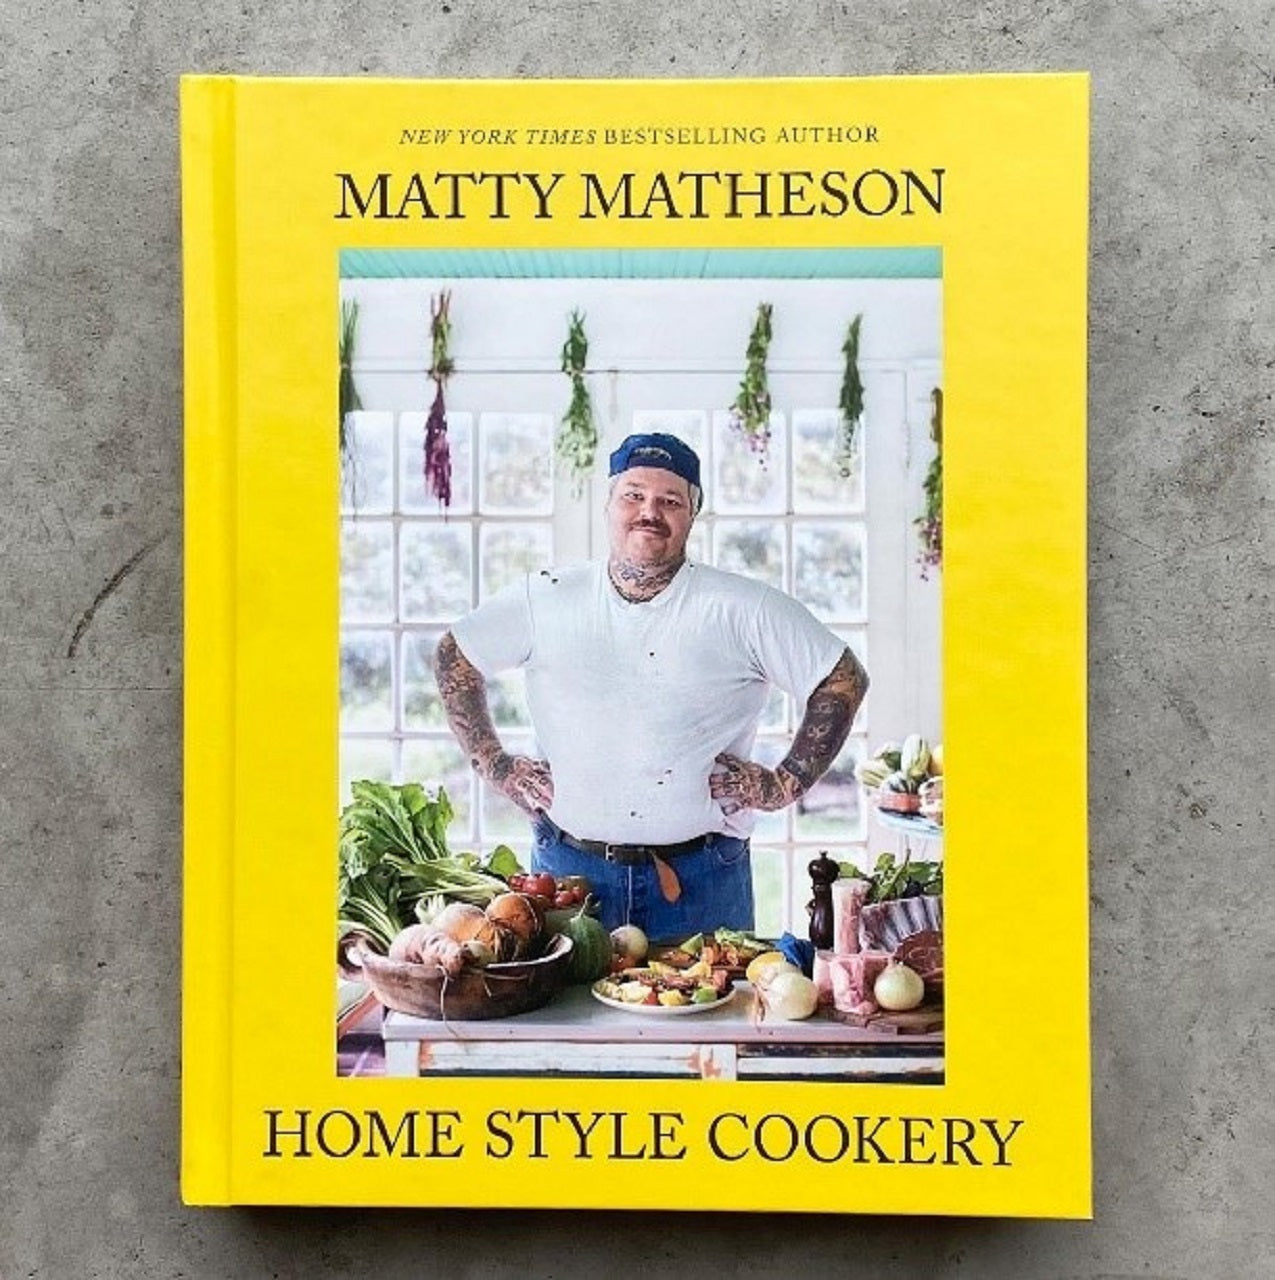 Homestyle cookery book